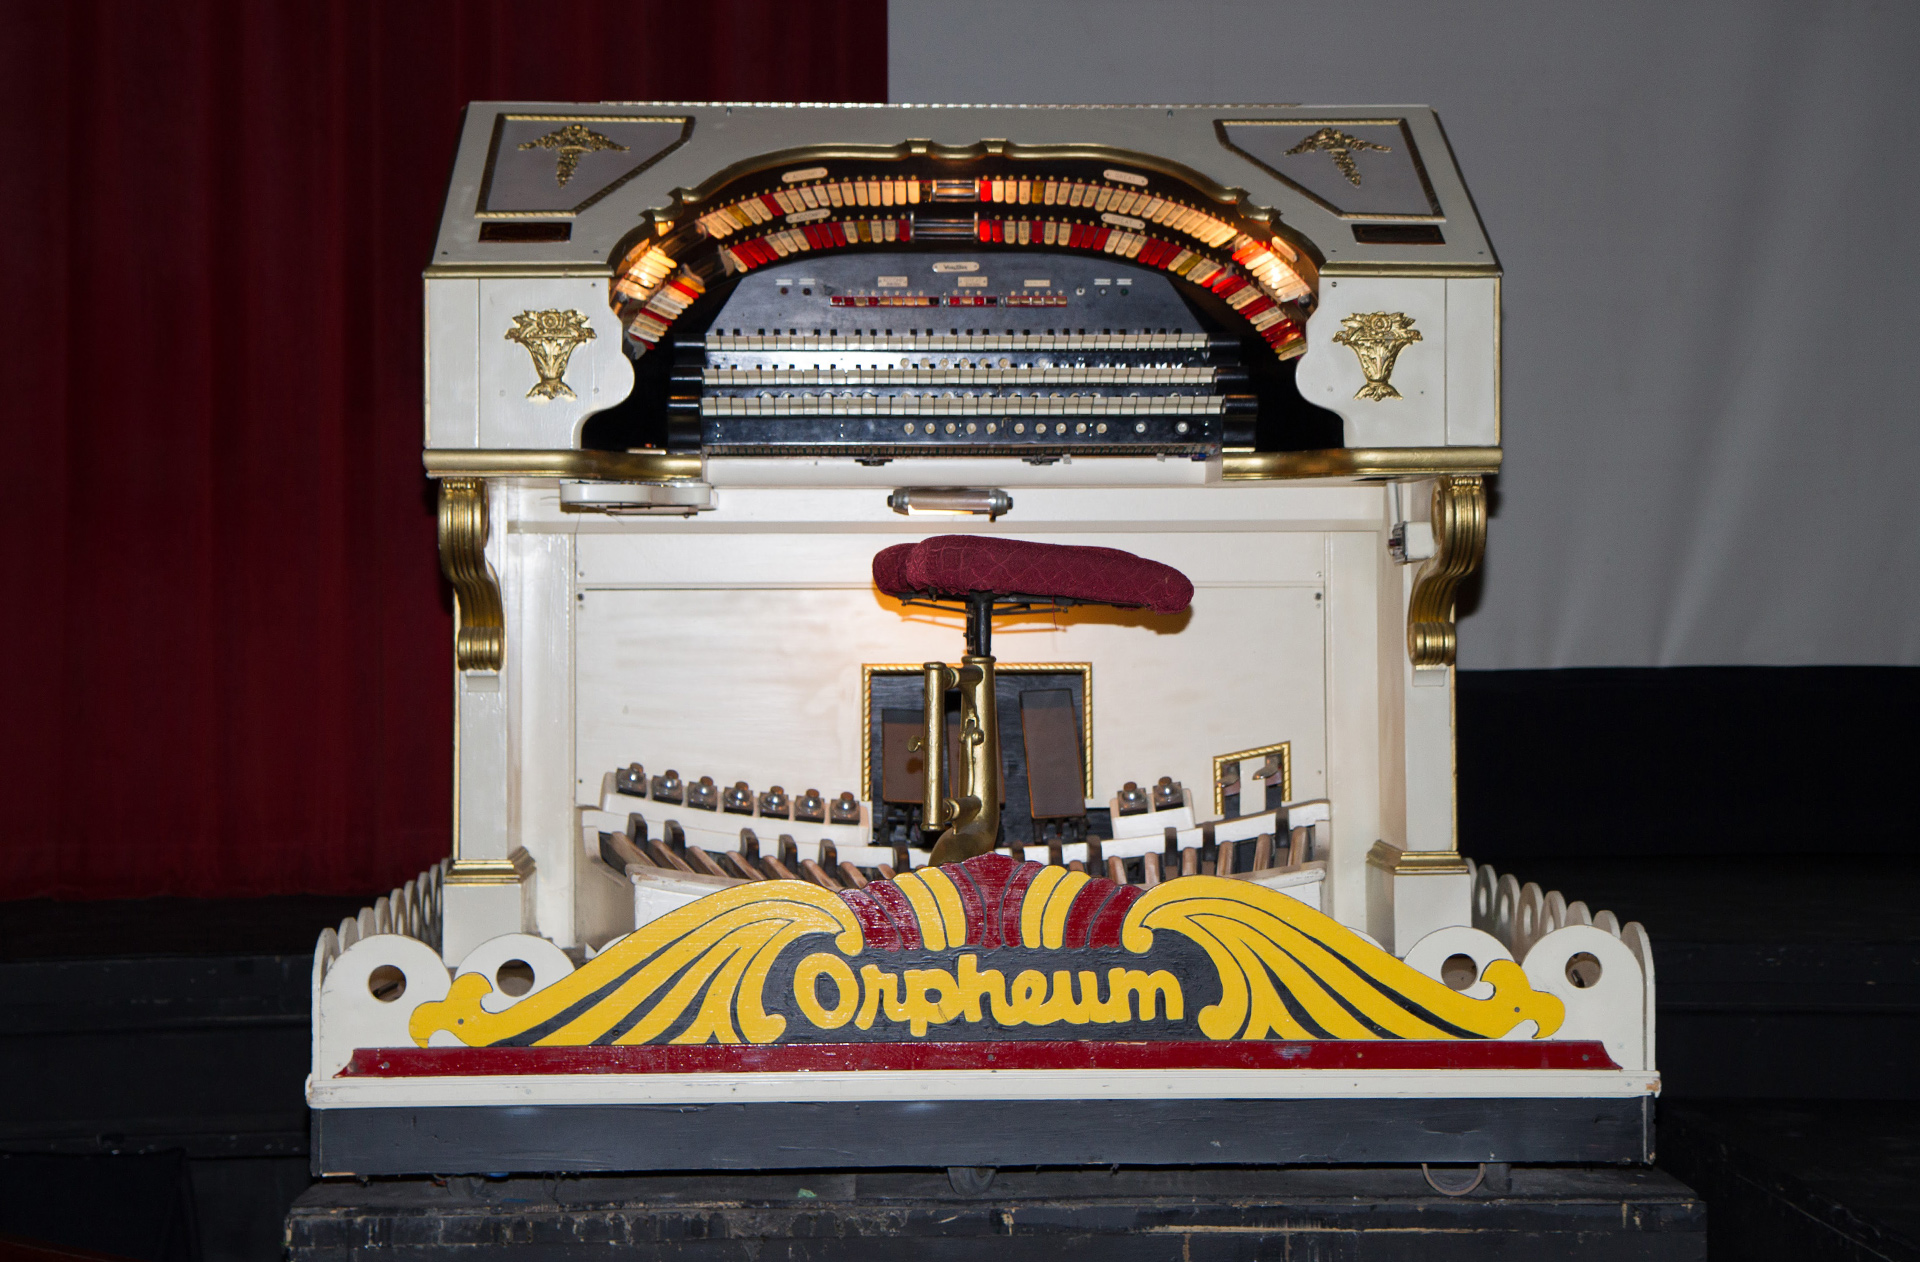 The Mighty Wurlitzer, after its local restorations